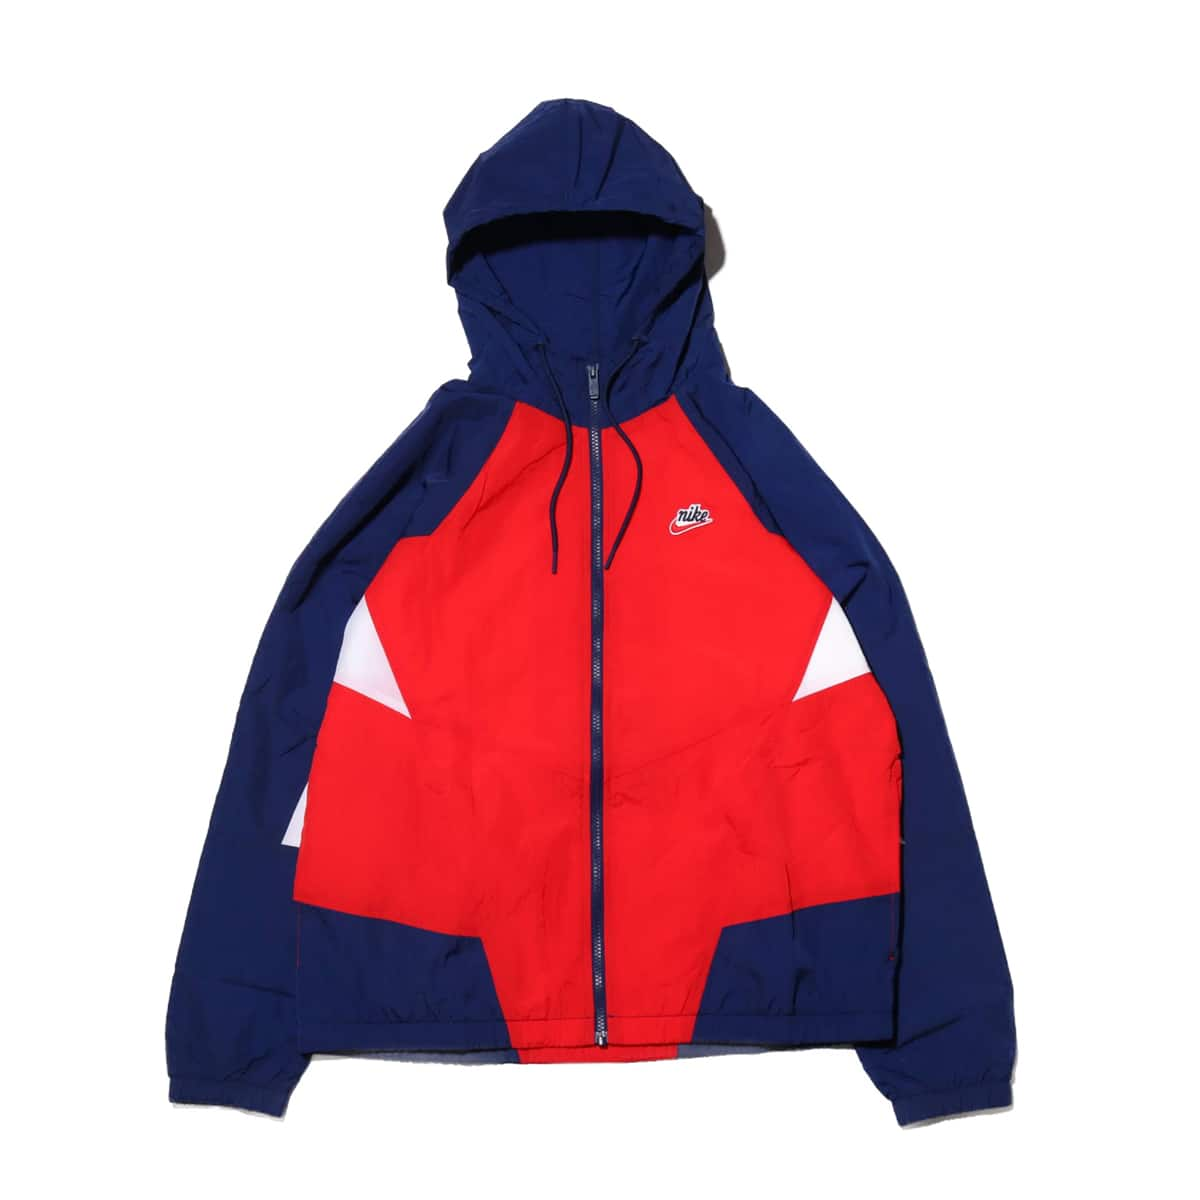 NIKE AS M NSW HE WR JKT WVN SIGN UNIVERSITY RED/BLUE VOID/UNIVERSITY RED 20SP-S_photo_large